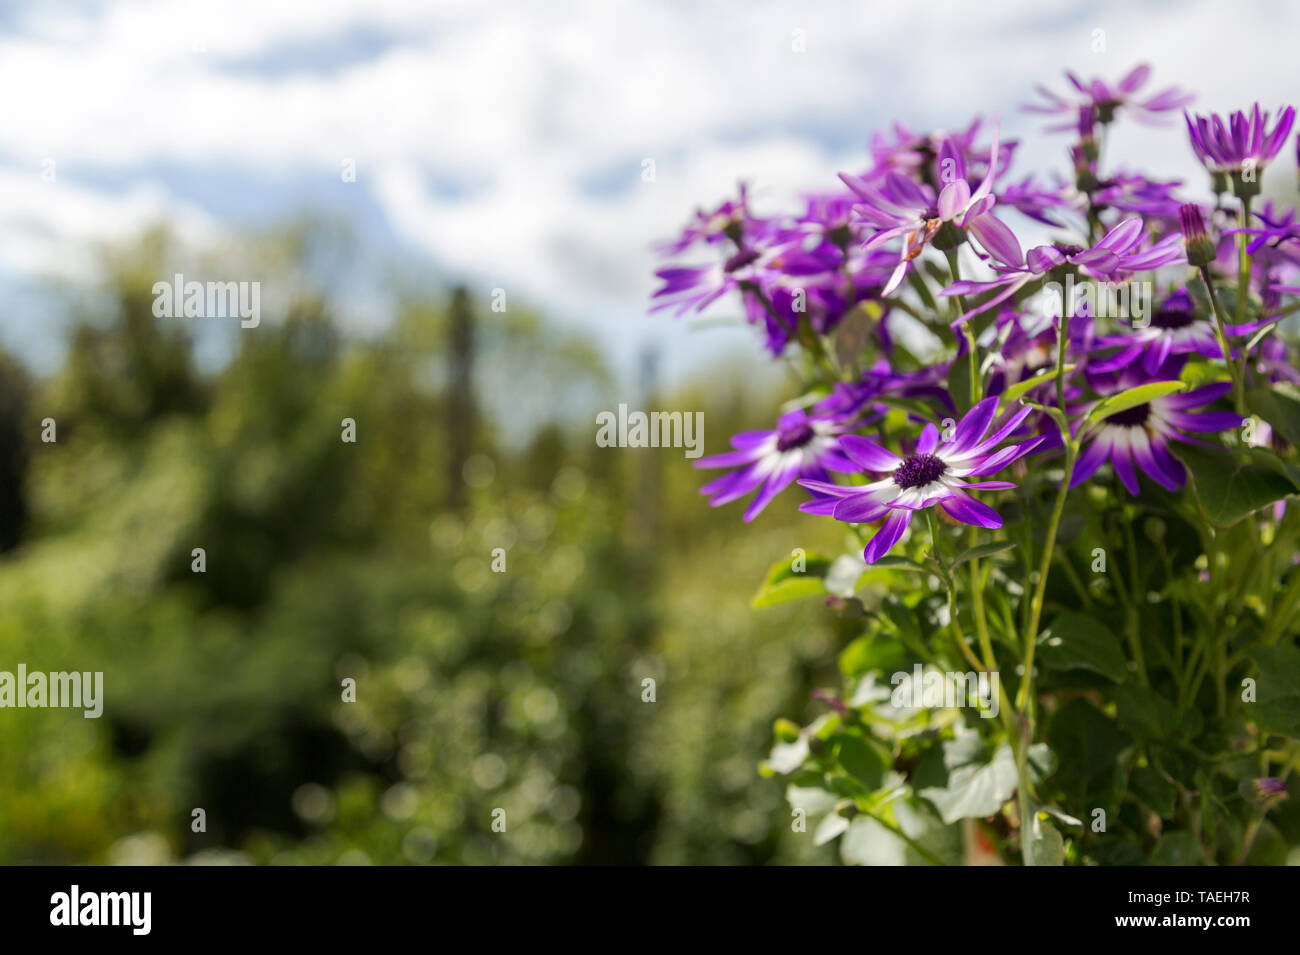 Violet Flowers. Senetti Violet Bicolor  (genus  Pericallis) flowers against a background of clouds and trees - Stock Image